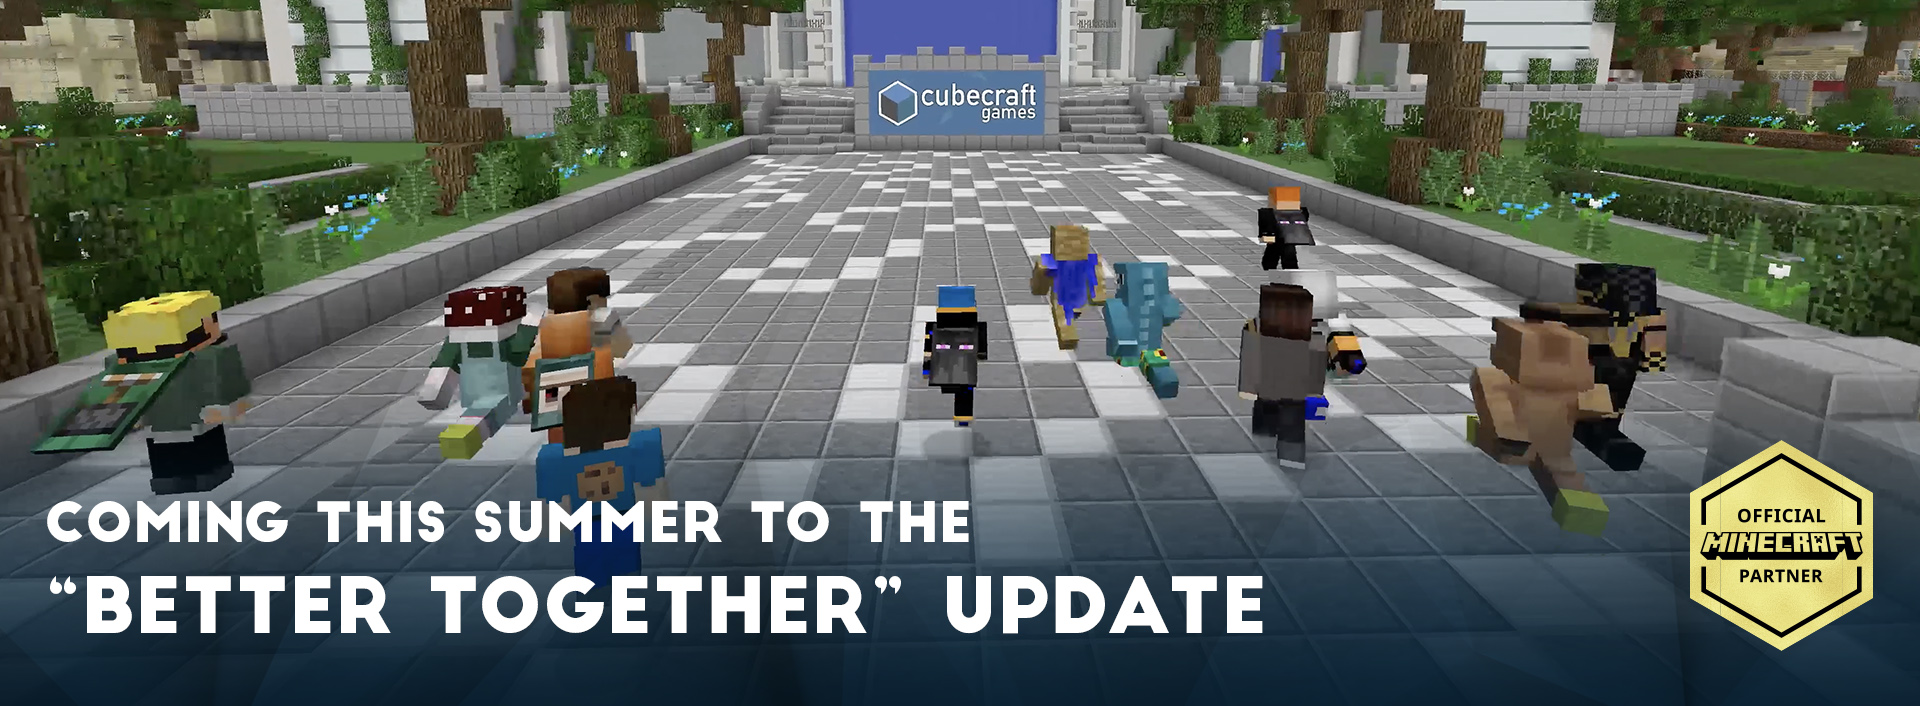 Better Together Update.jpg